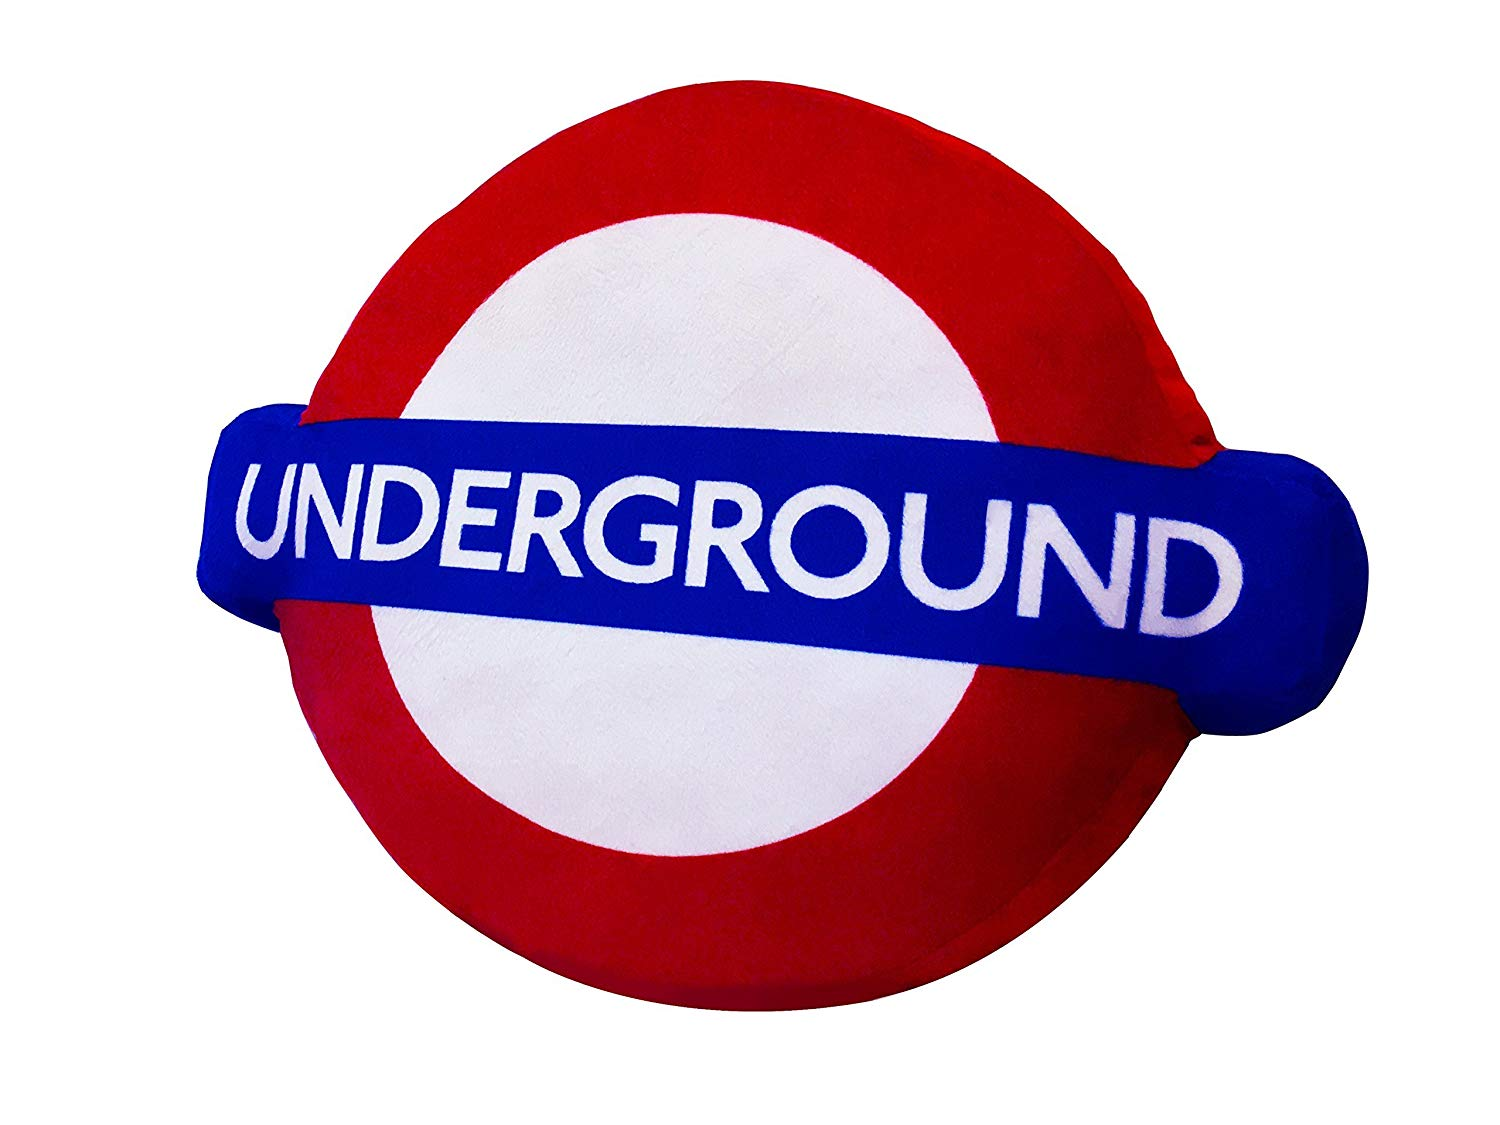 London Underground 3D Logo Cushion/Pillow.